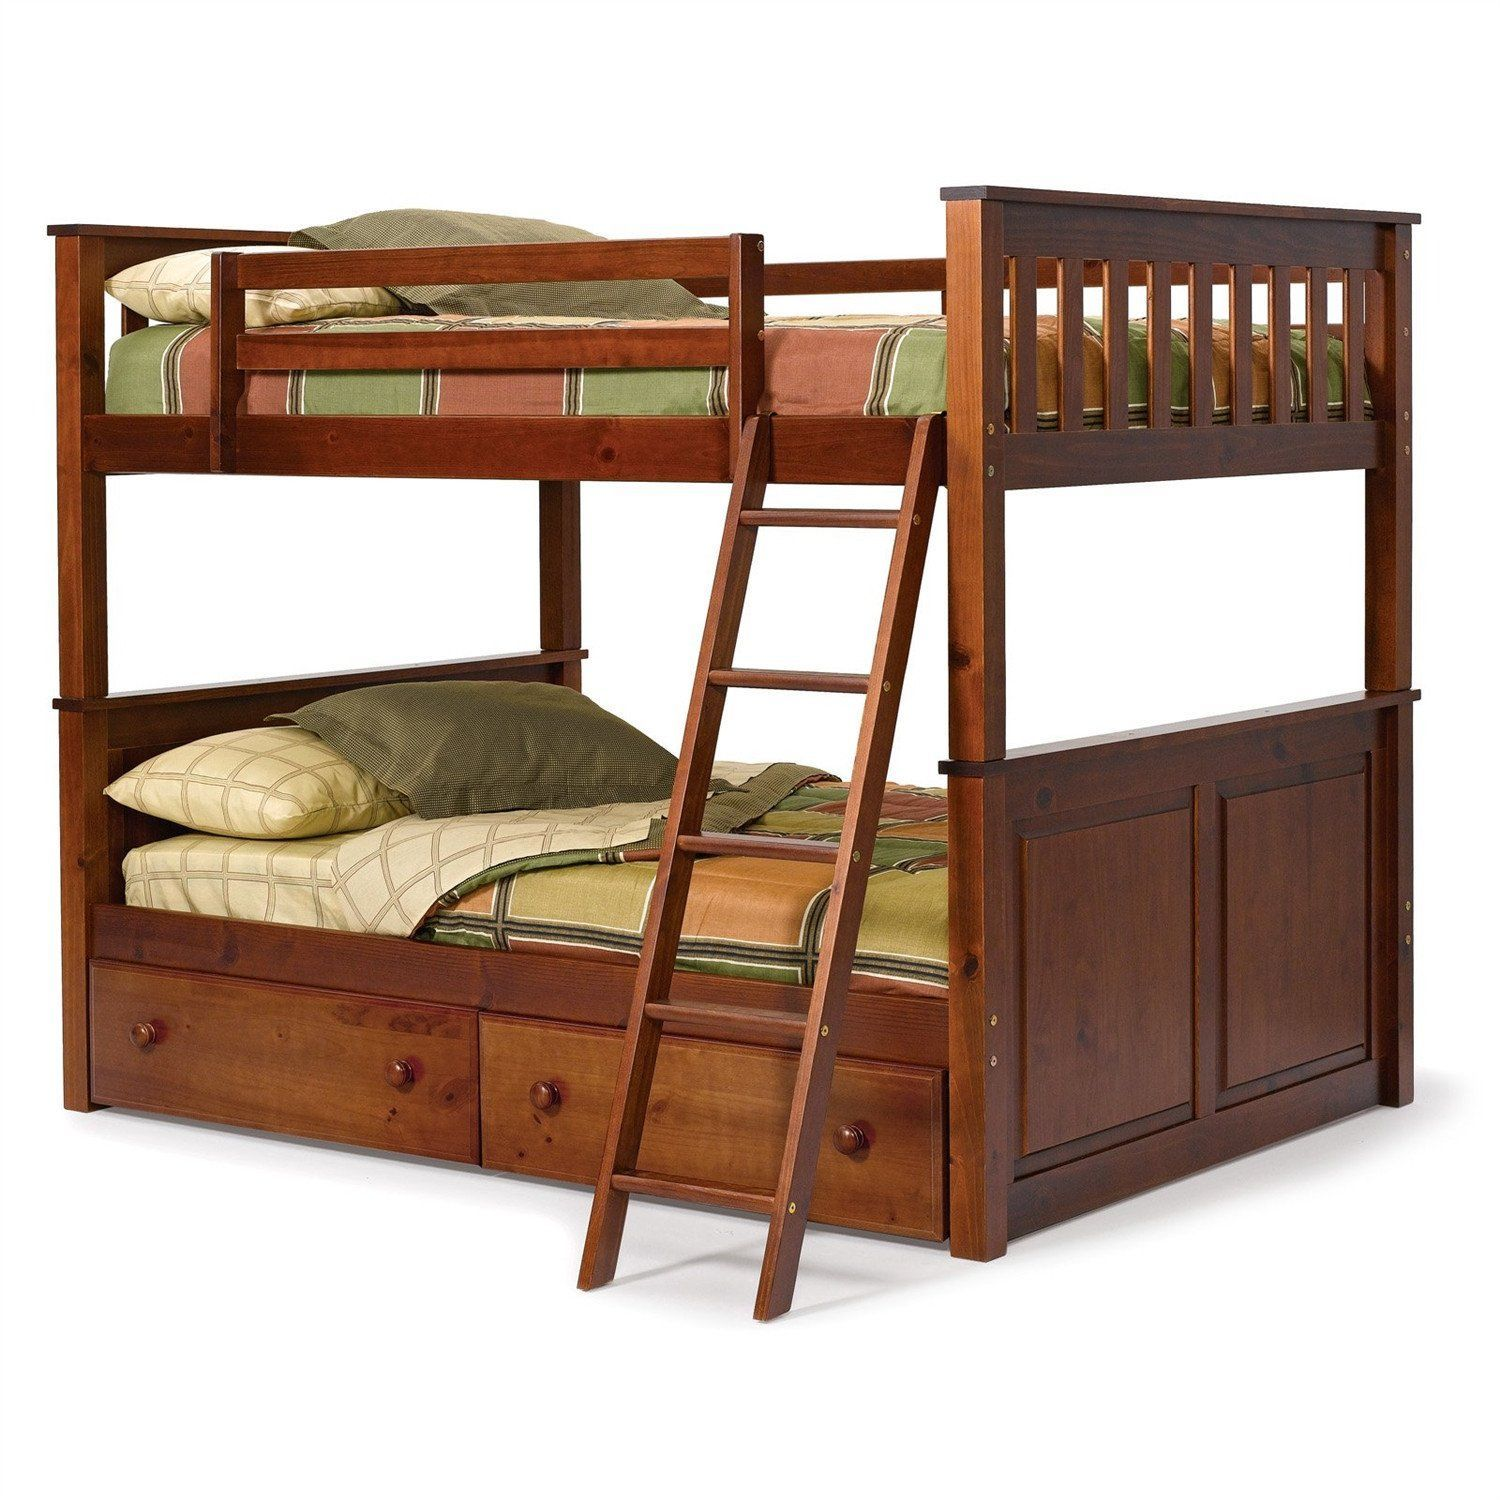 Full over Full size Bunk Bed in Solid Hardwood with